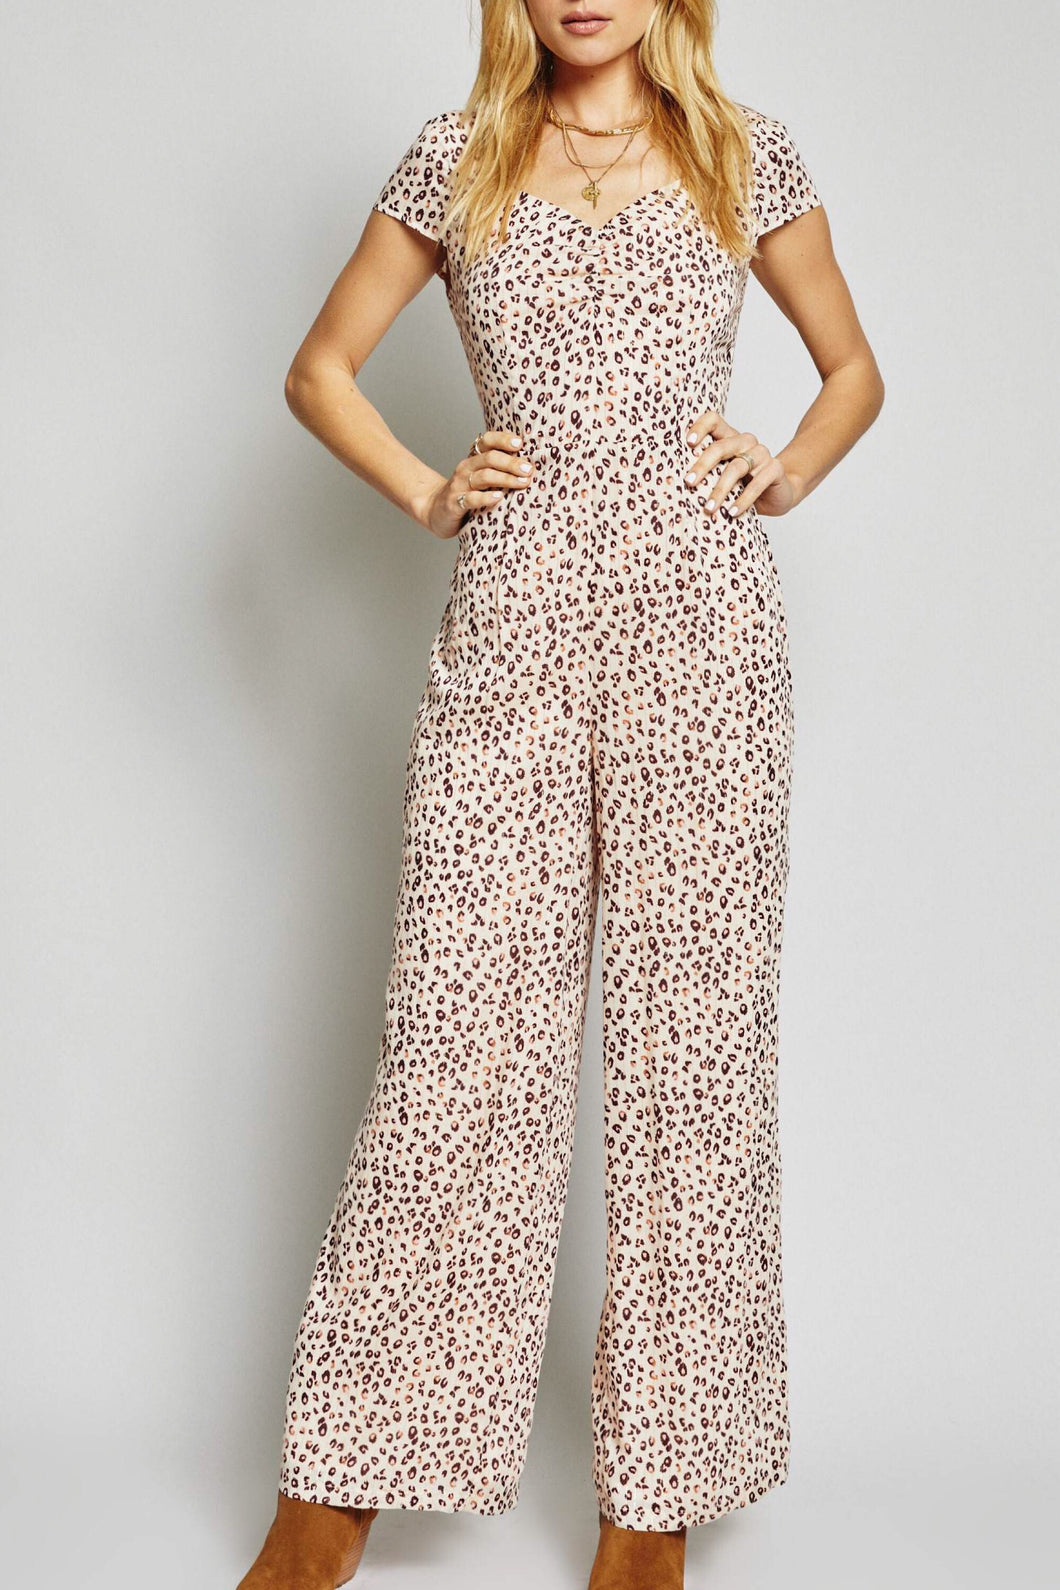 REBEL HEART JUMPSUIT